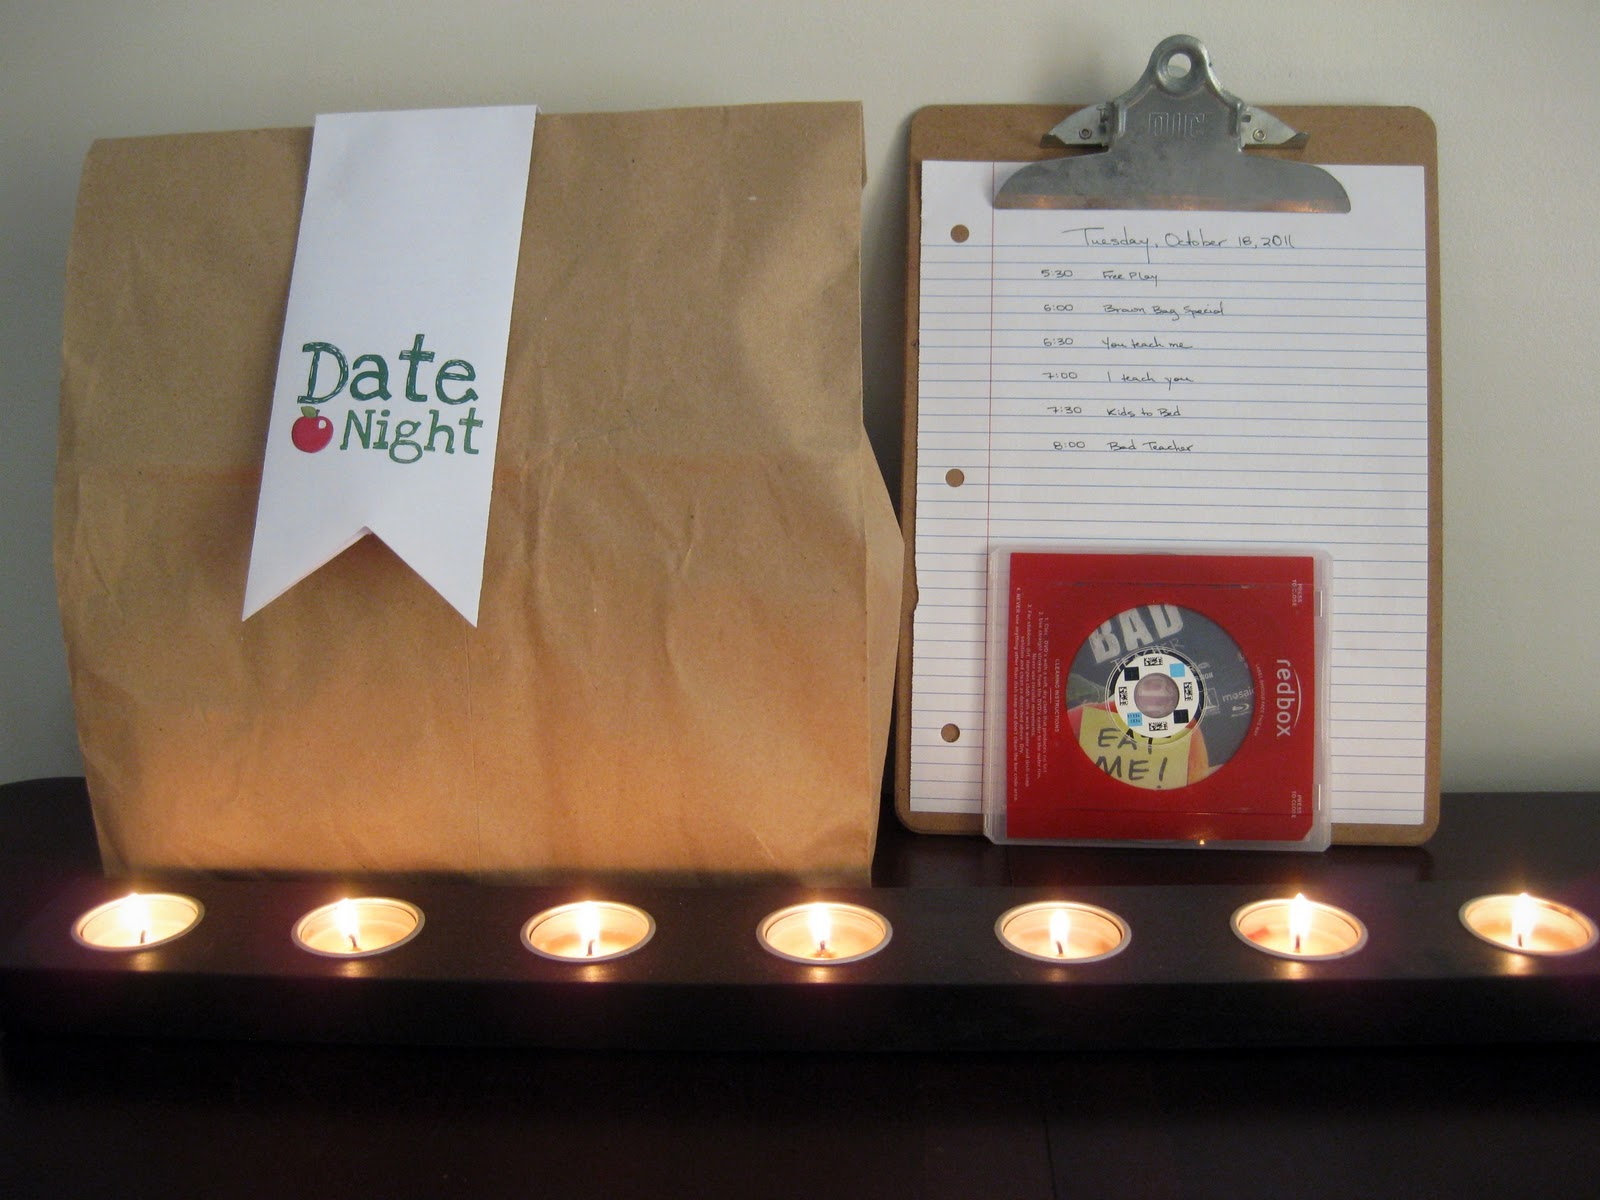 Date night ideas for him at home